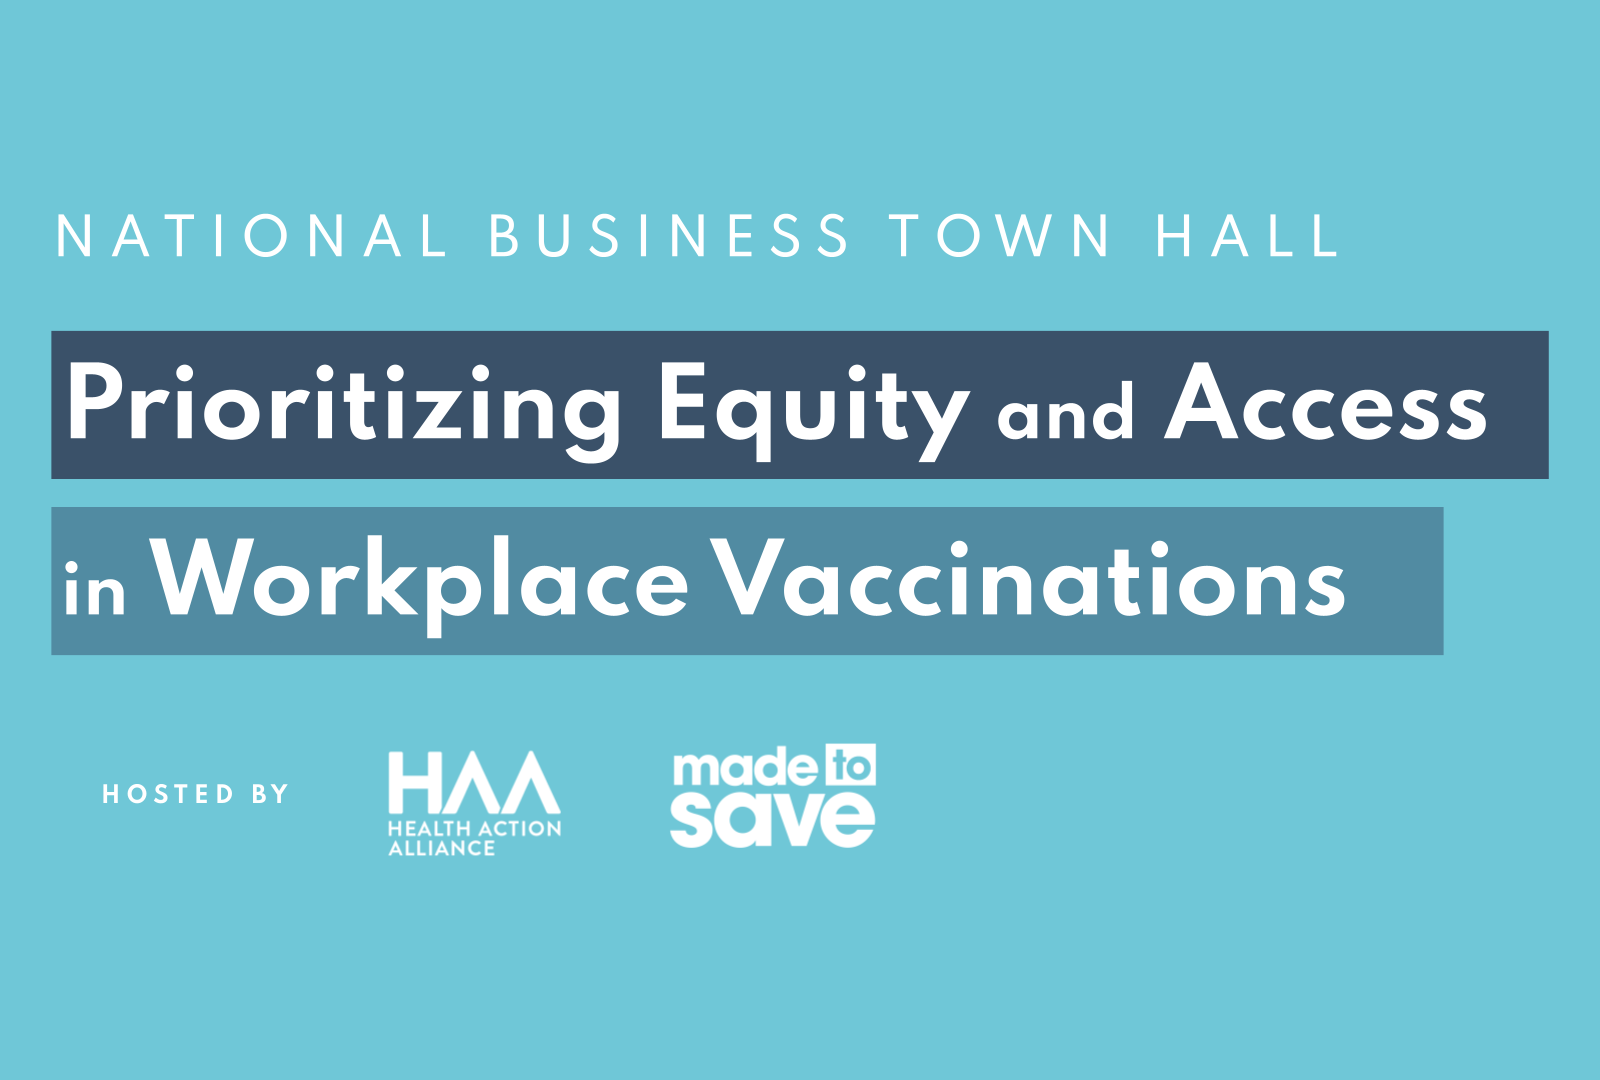 Prioritizing Equity and Access in Workplace Vaccinations